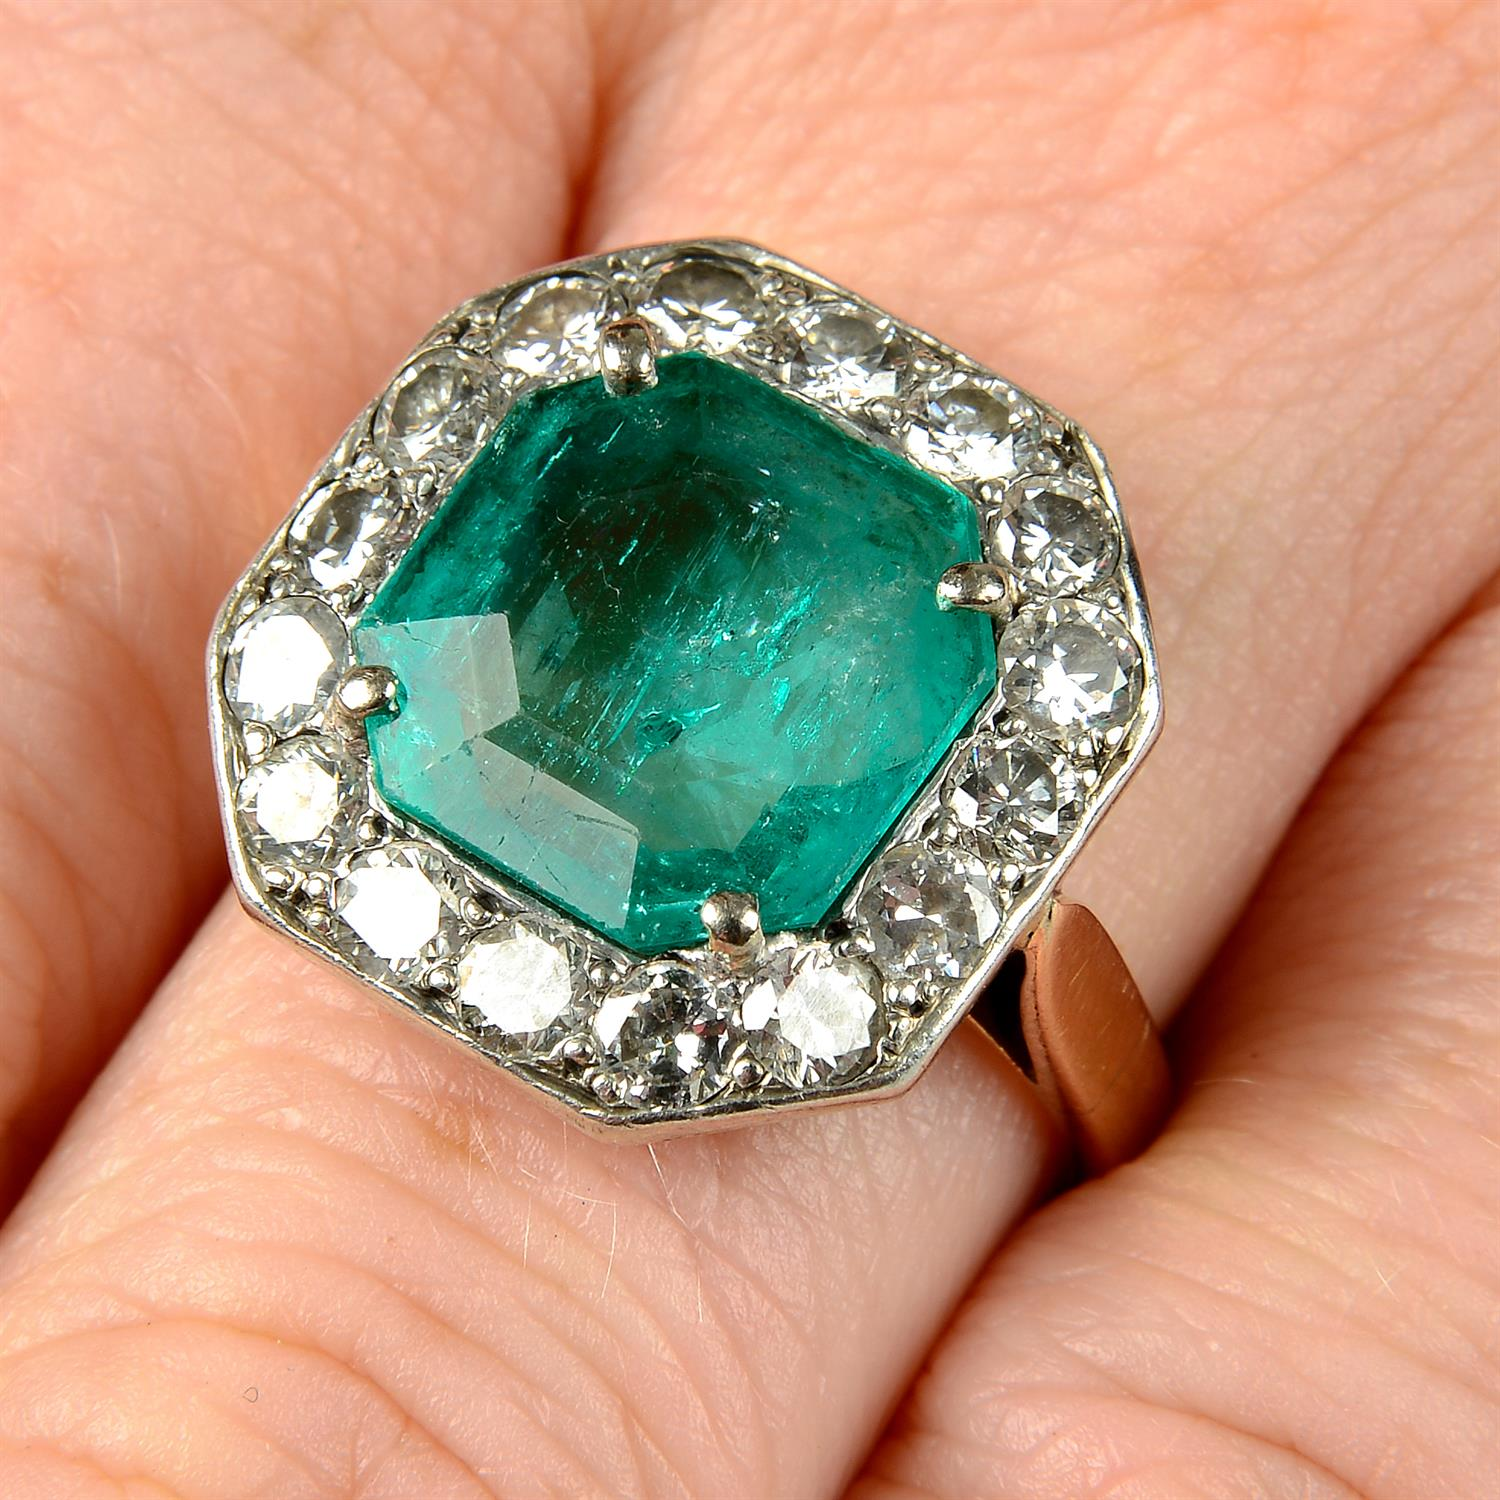 A mid 20th century silver and gold, emerald and brilliant-cut diamond ring.